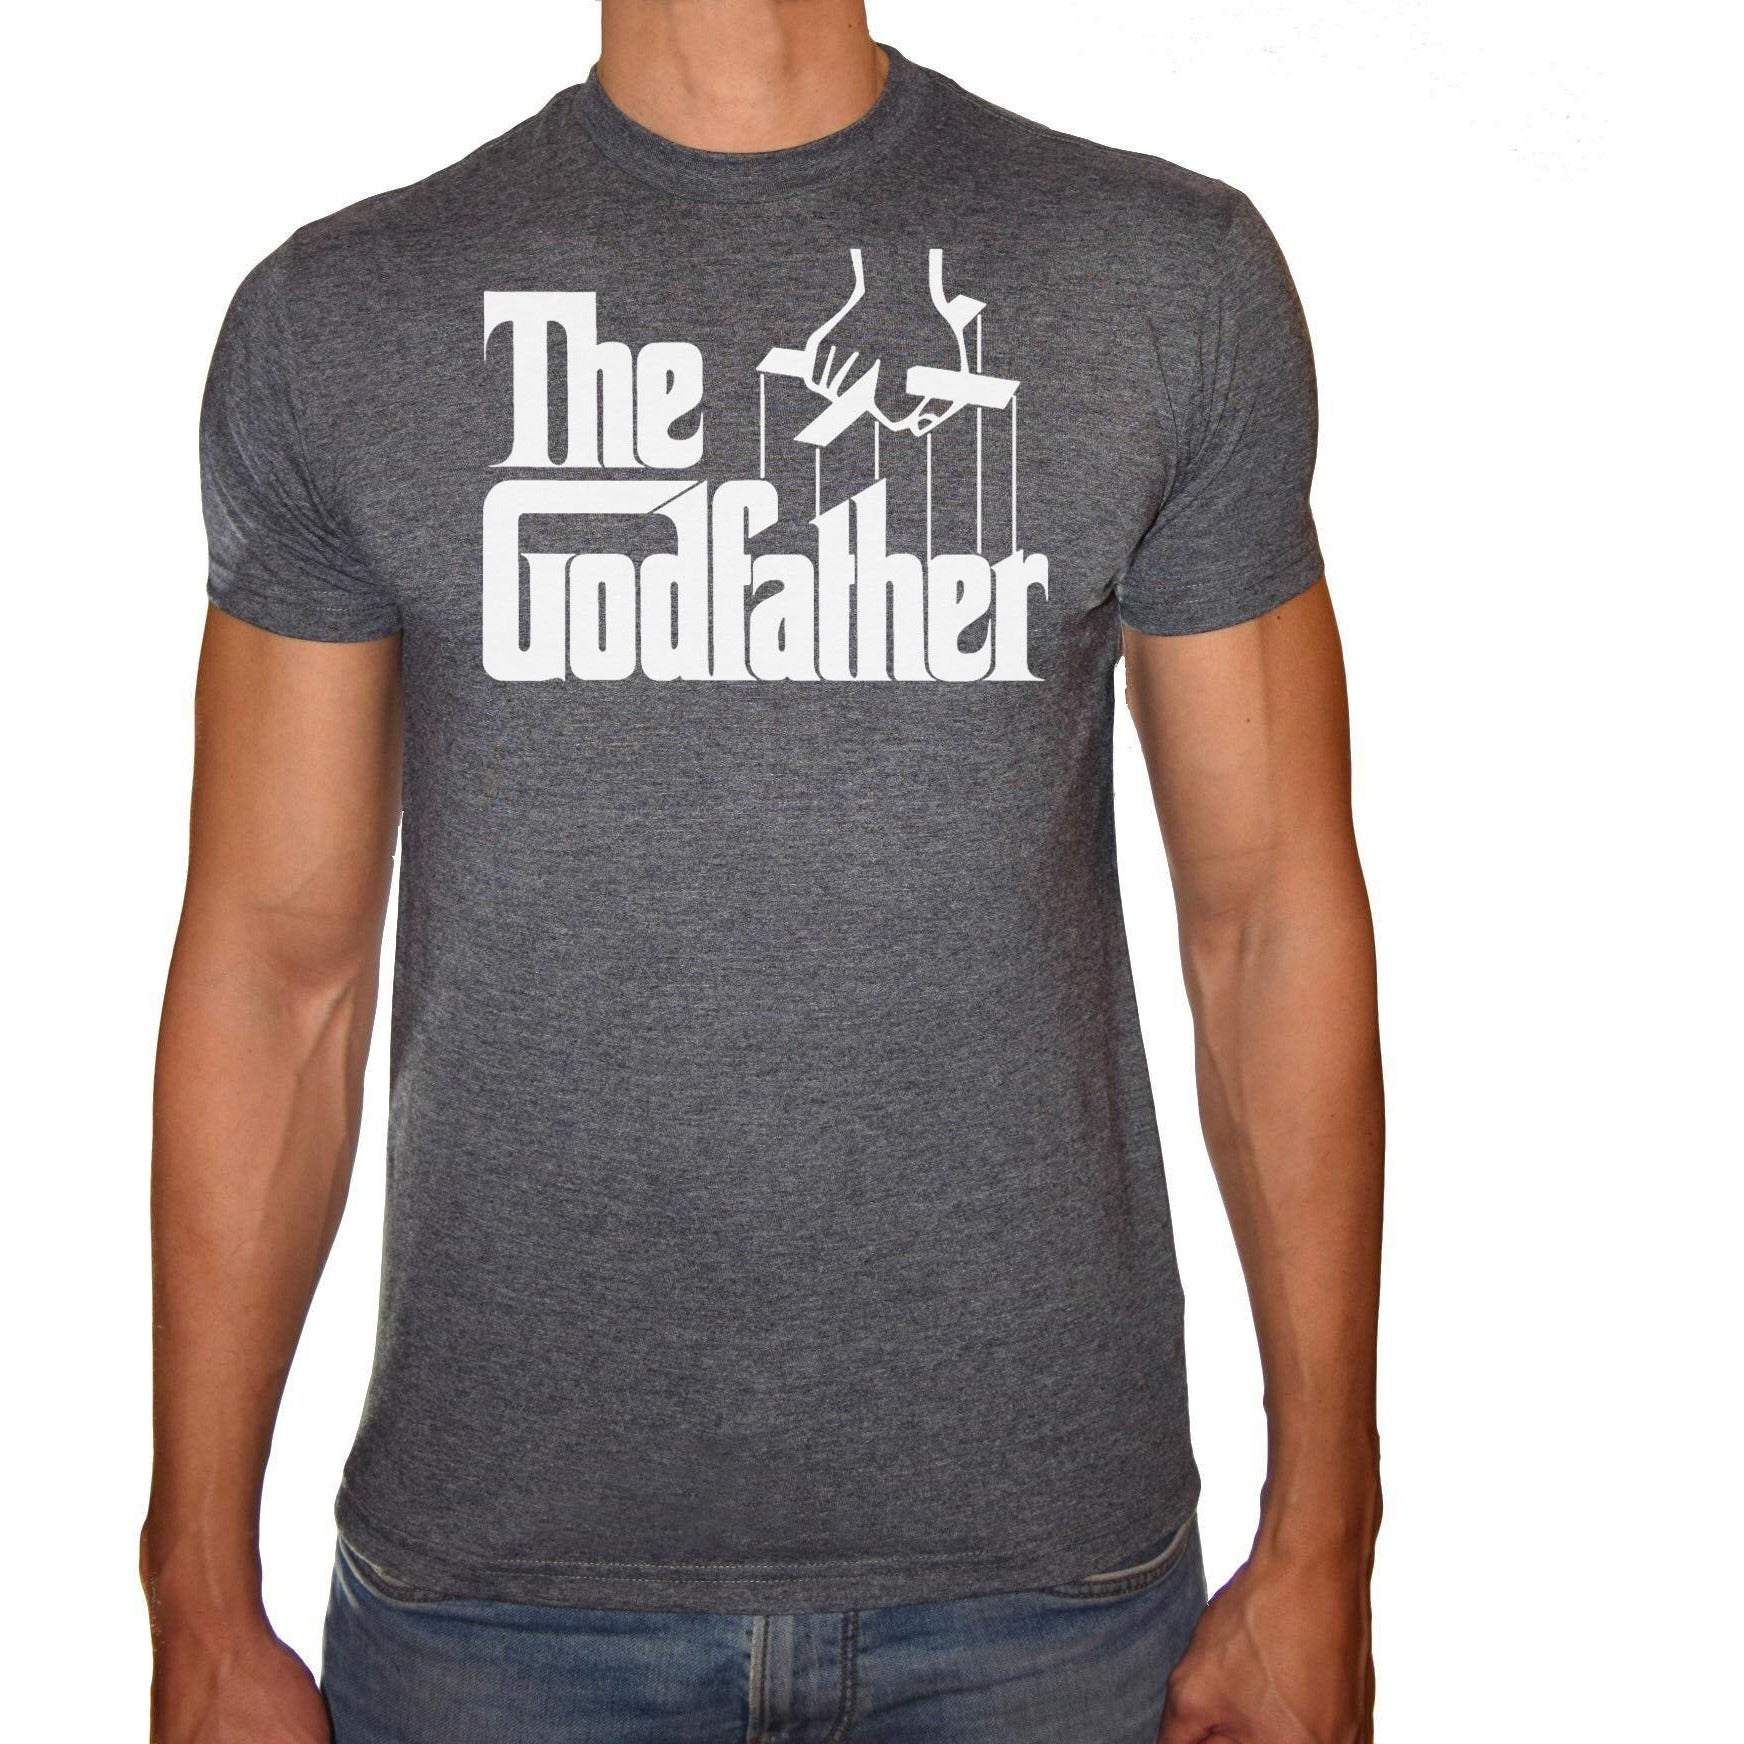 Phoenix CHARCOAL Round Neck Printed T-Shirt Men (The godfather)